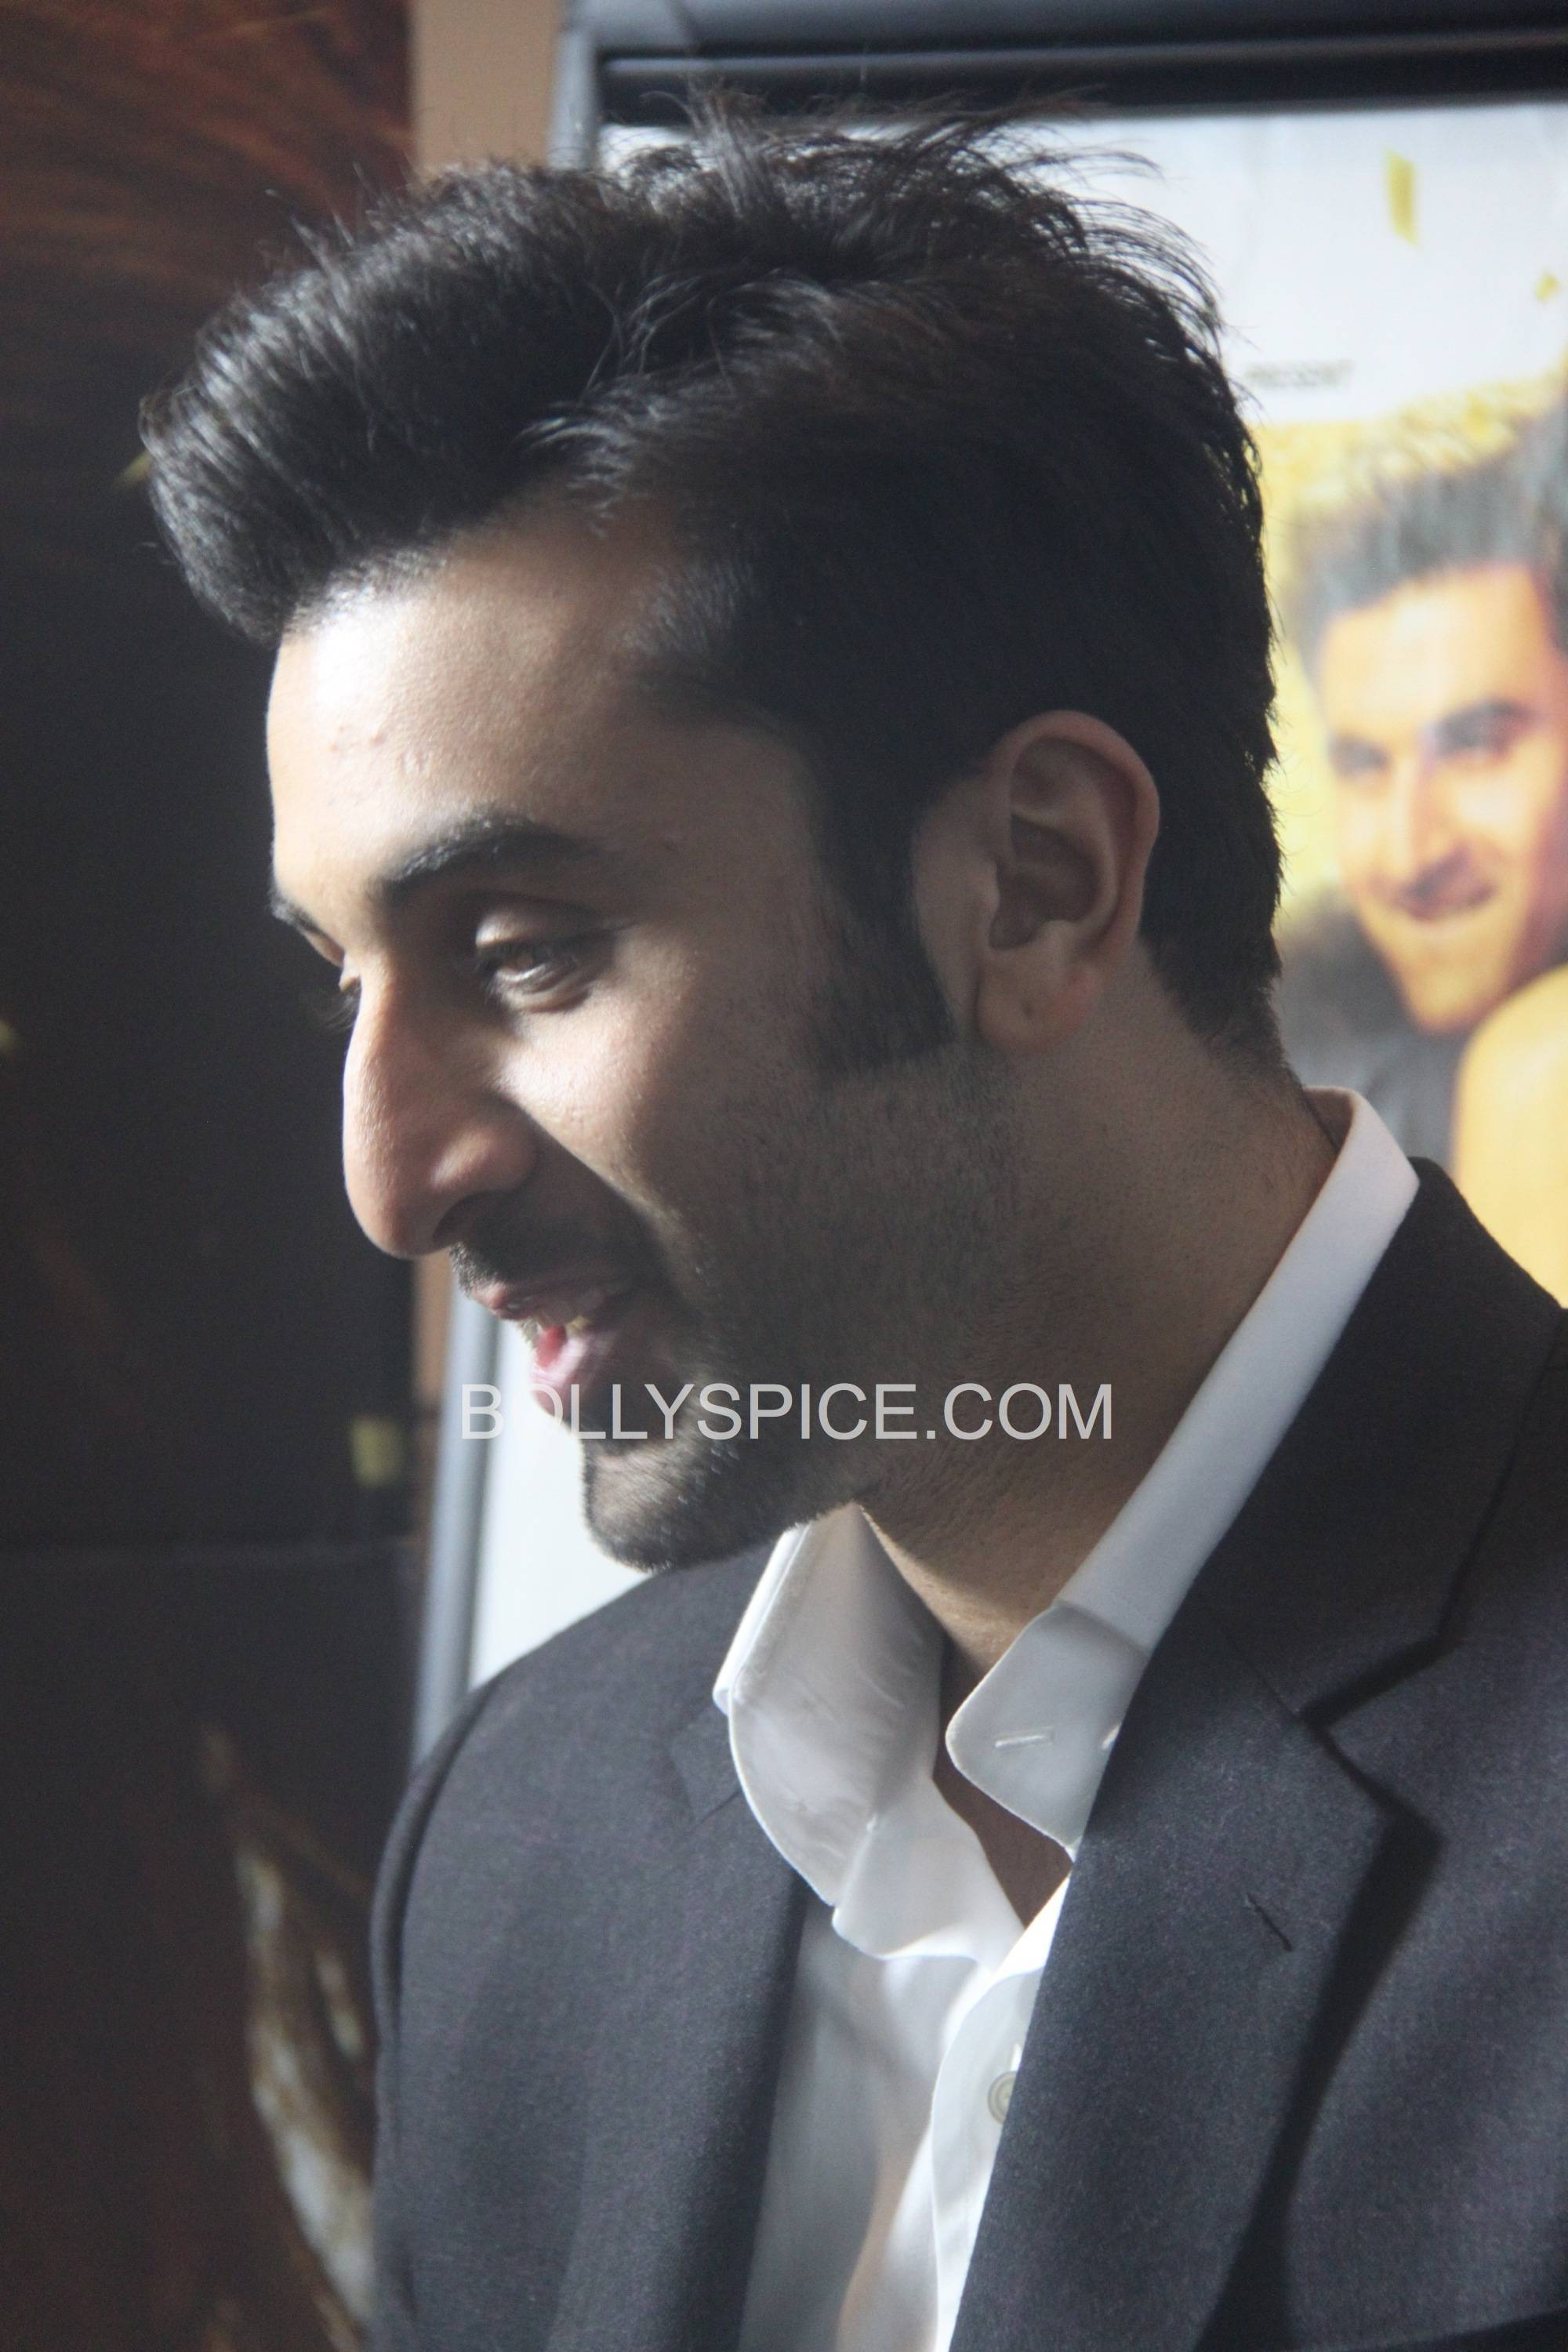 ranbirukjyhd01 Ranbir Kapoor in London to promote Yeh Jawaani Hai Deewani Preview!